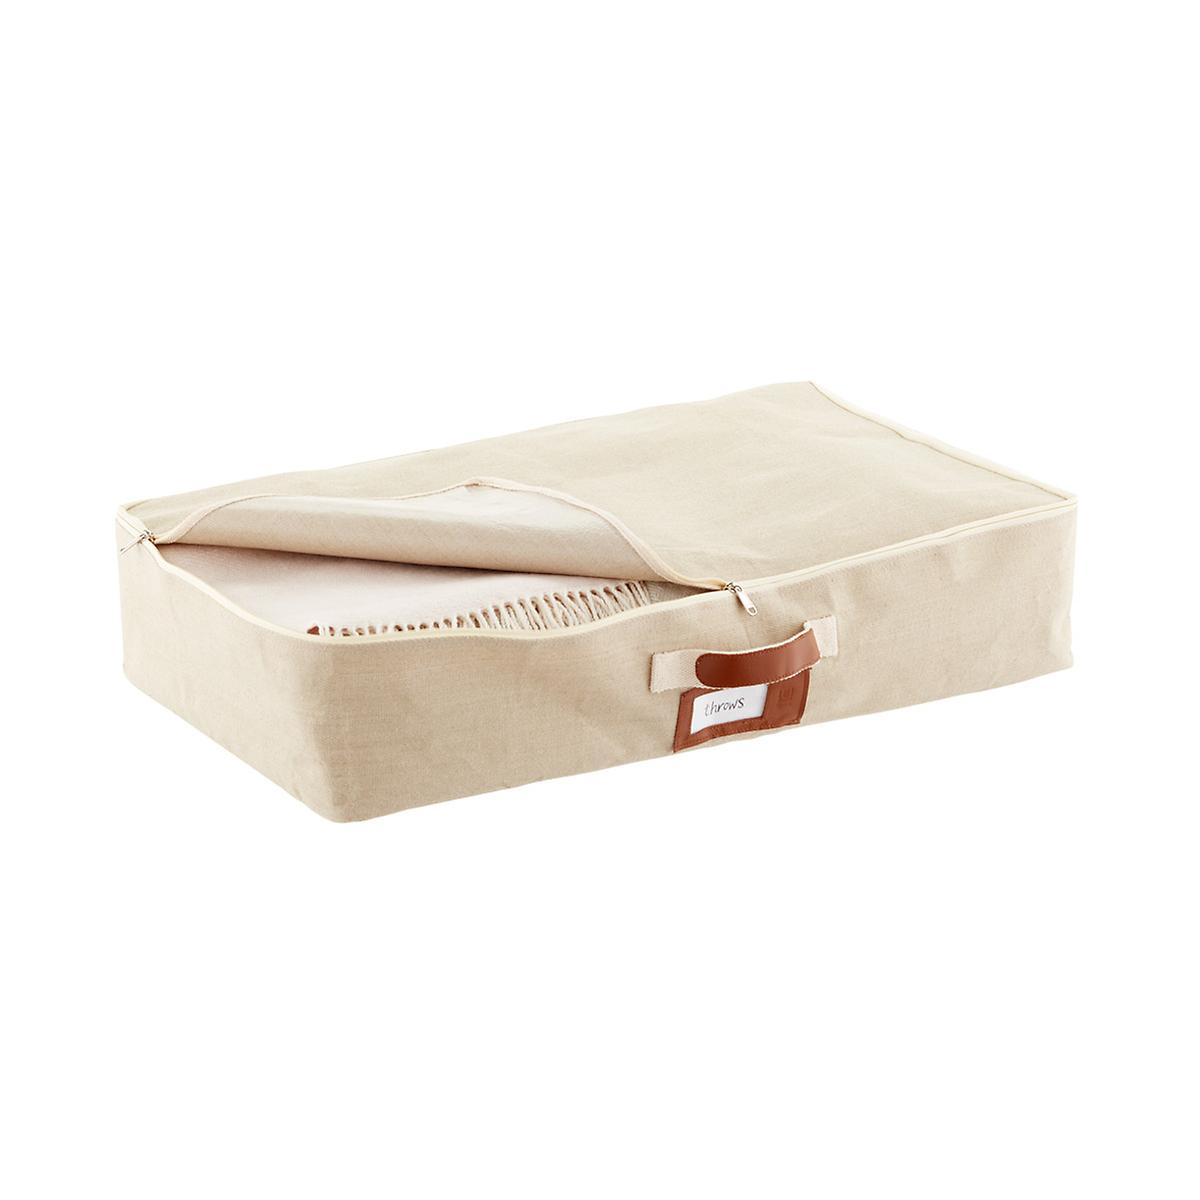 Umbra Heather Brown Under Bed Artisan Crunch Storage Bag